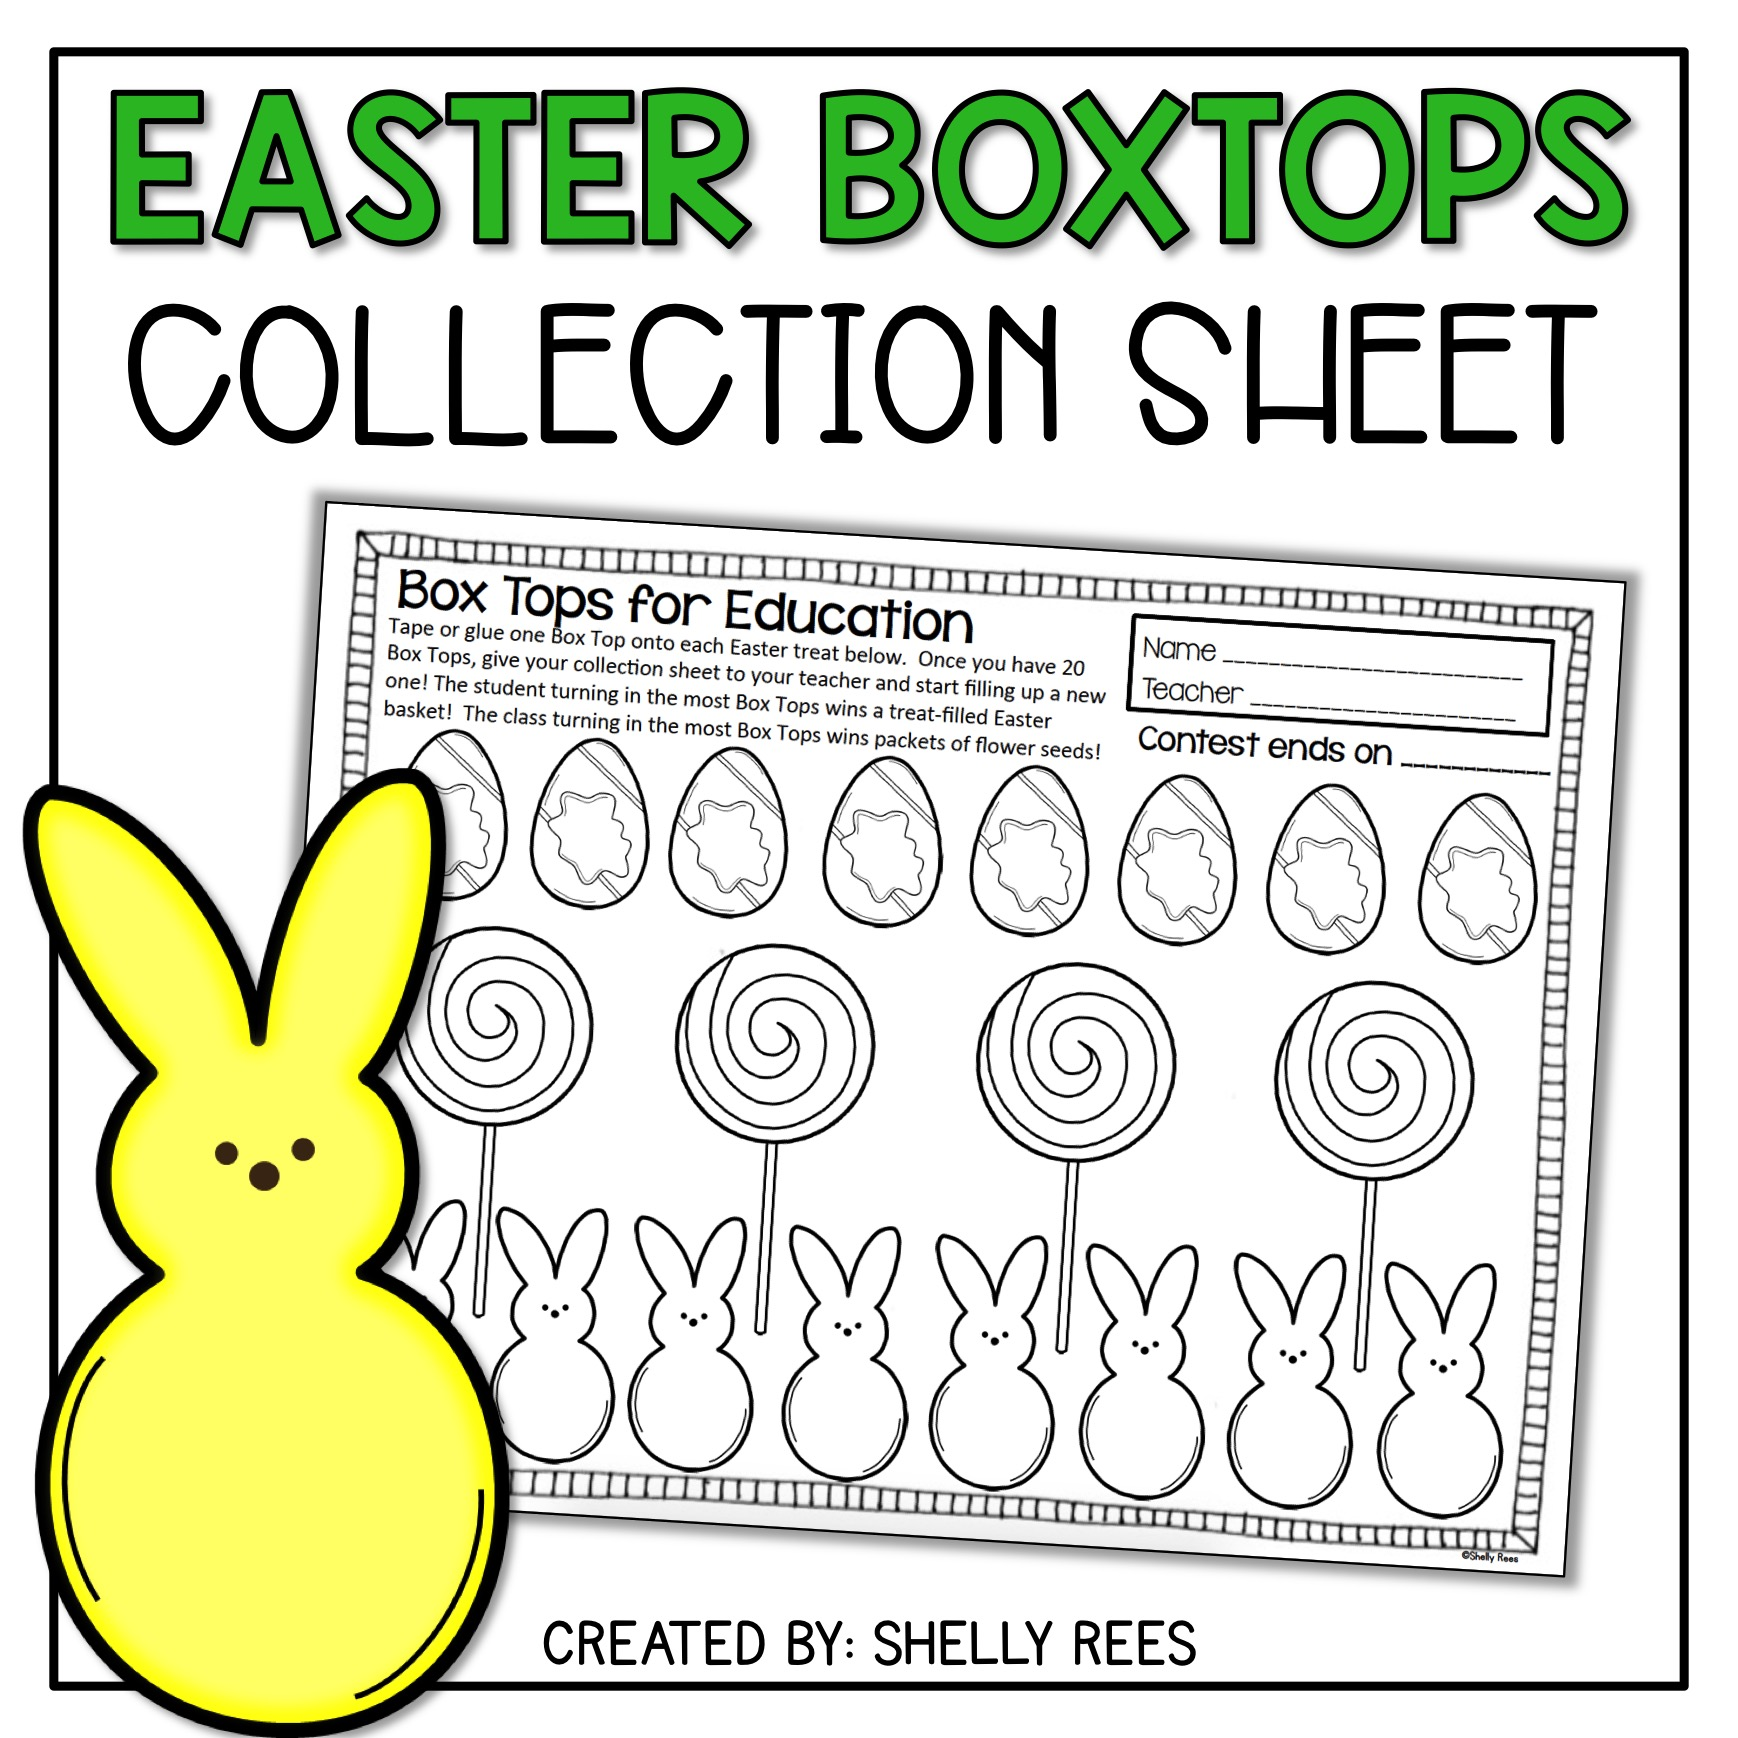 Easter Boxtops Collection Sheet